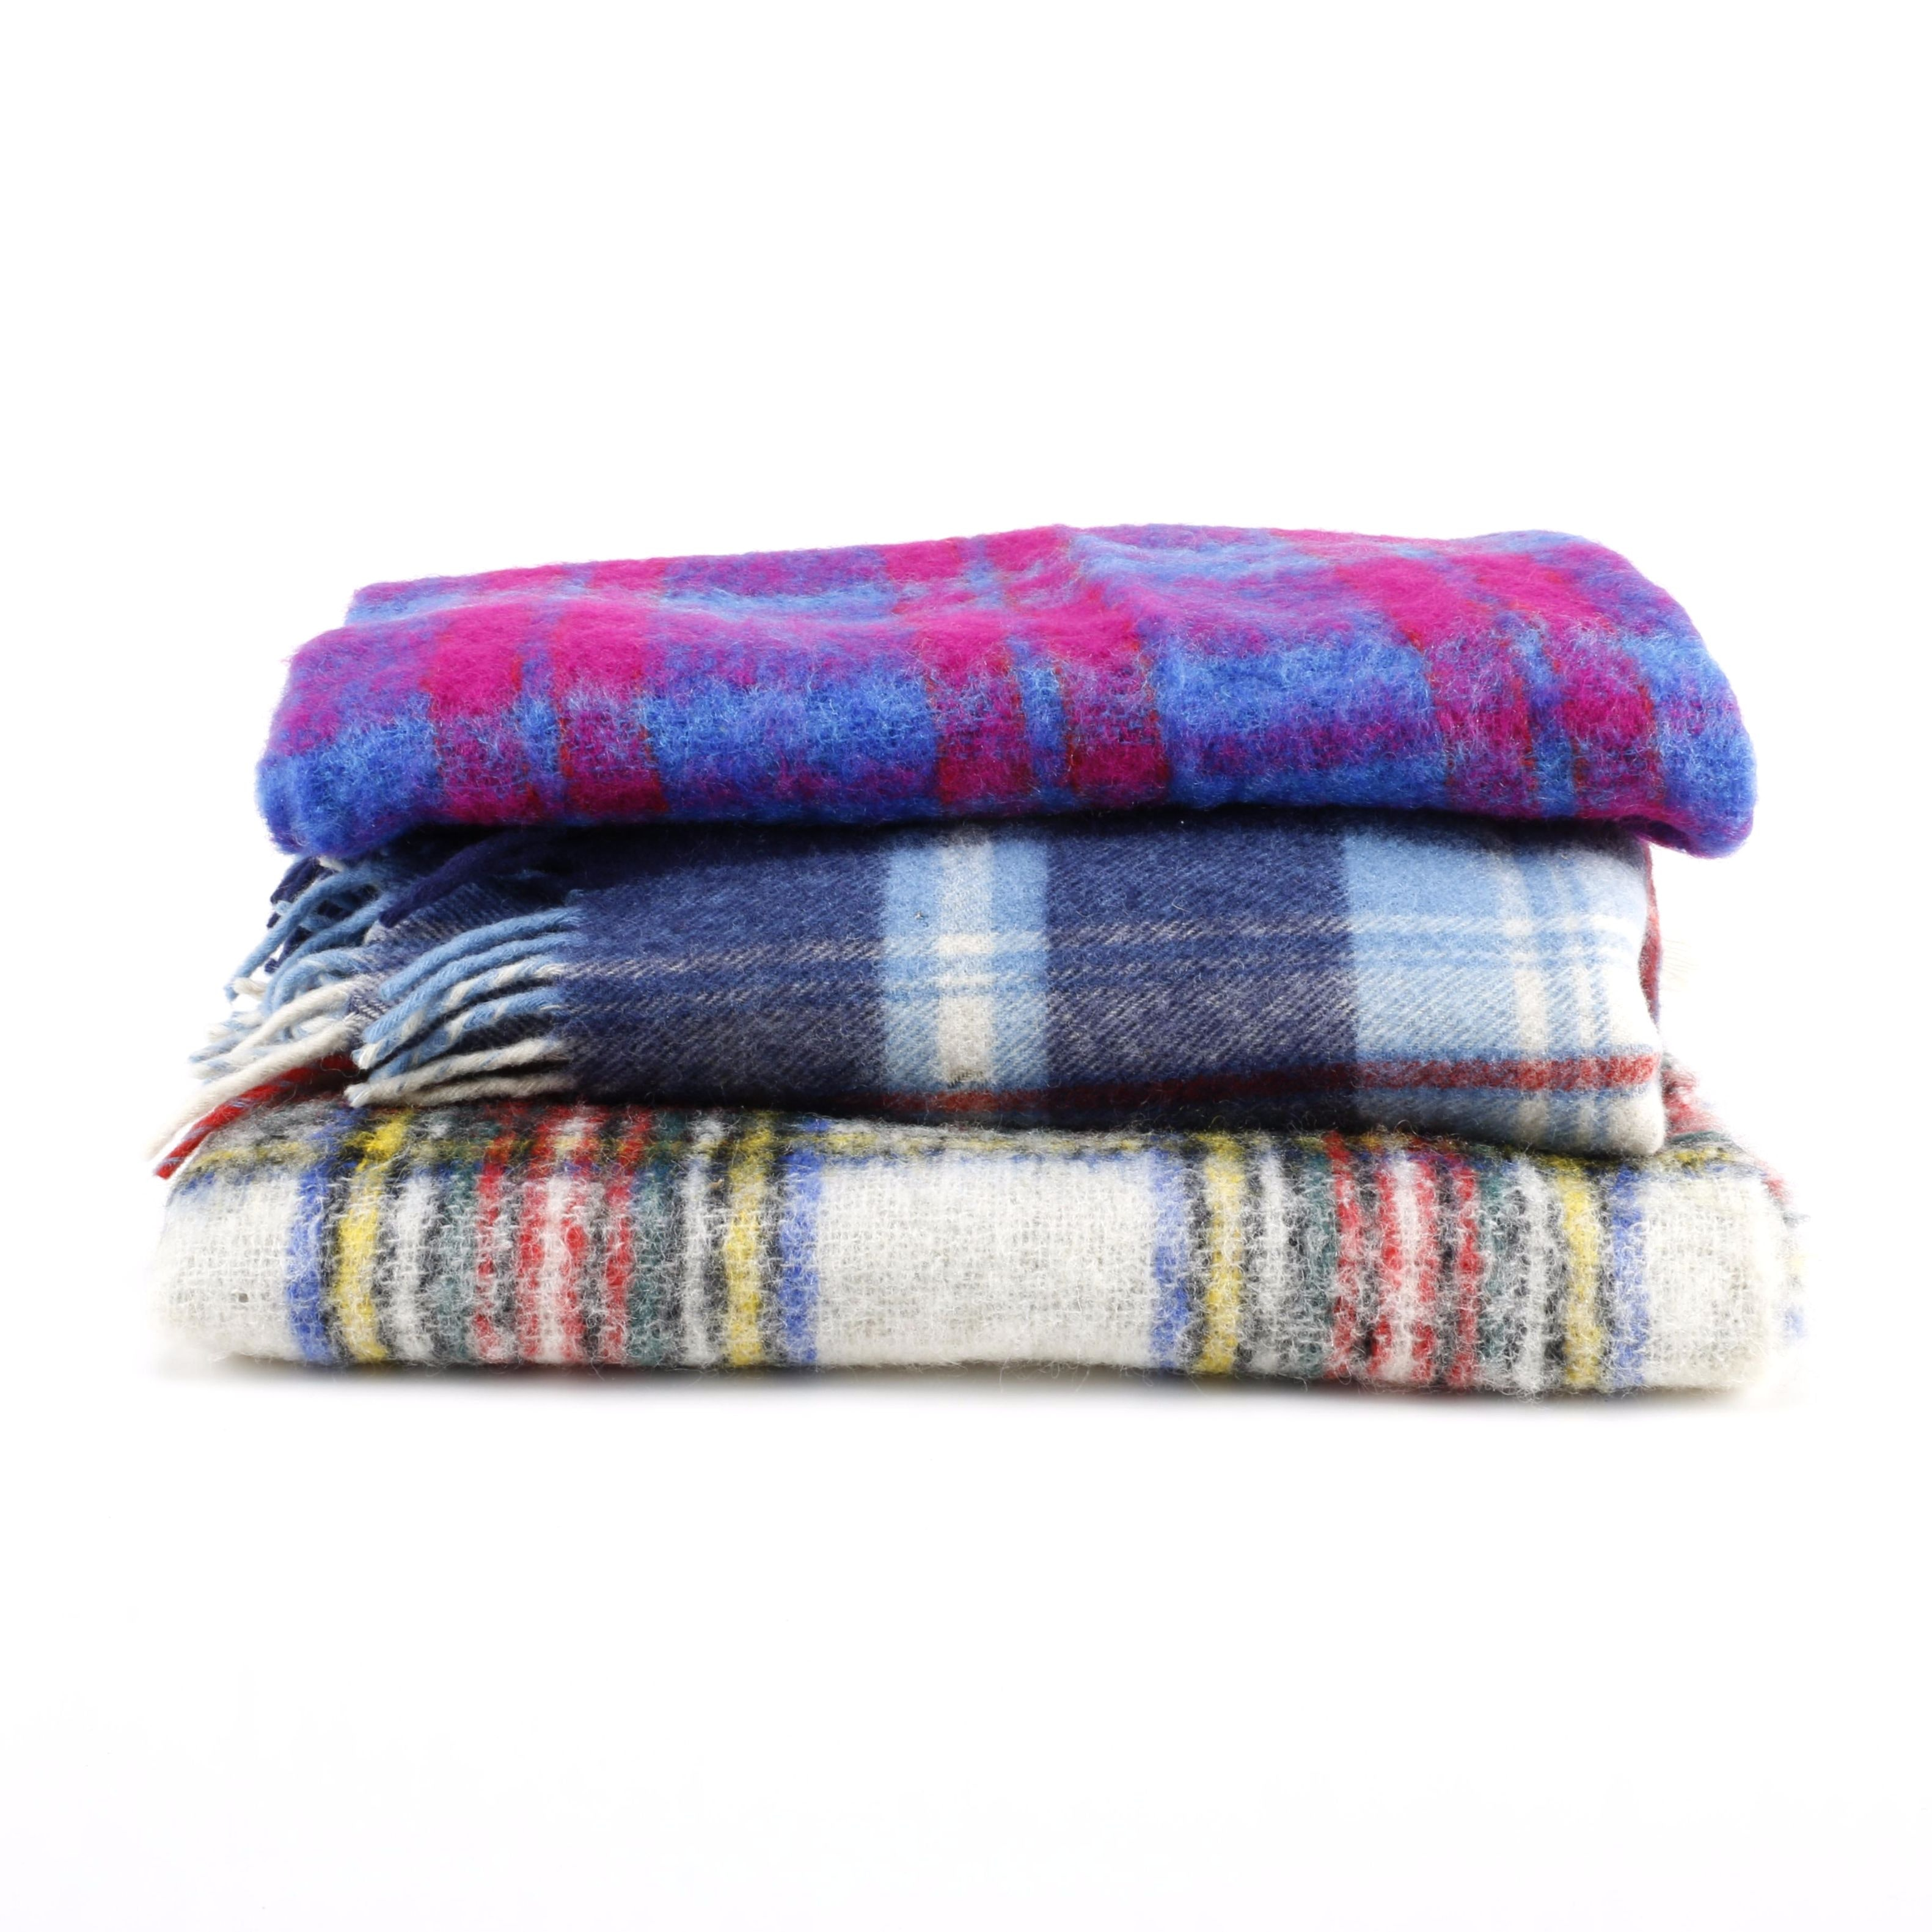 Vintage Irish and Scottish Wool Blankets from Glendevon, Troy Robe and Donegal Design